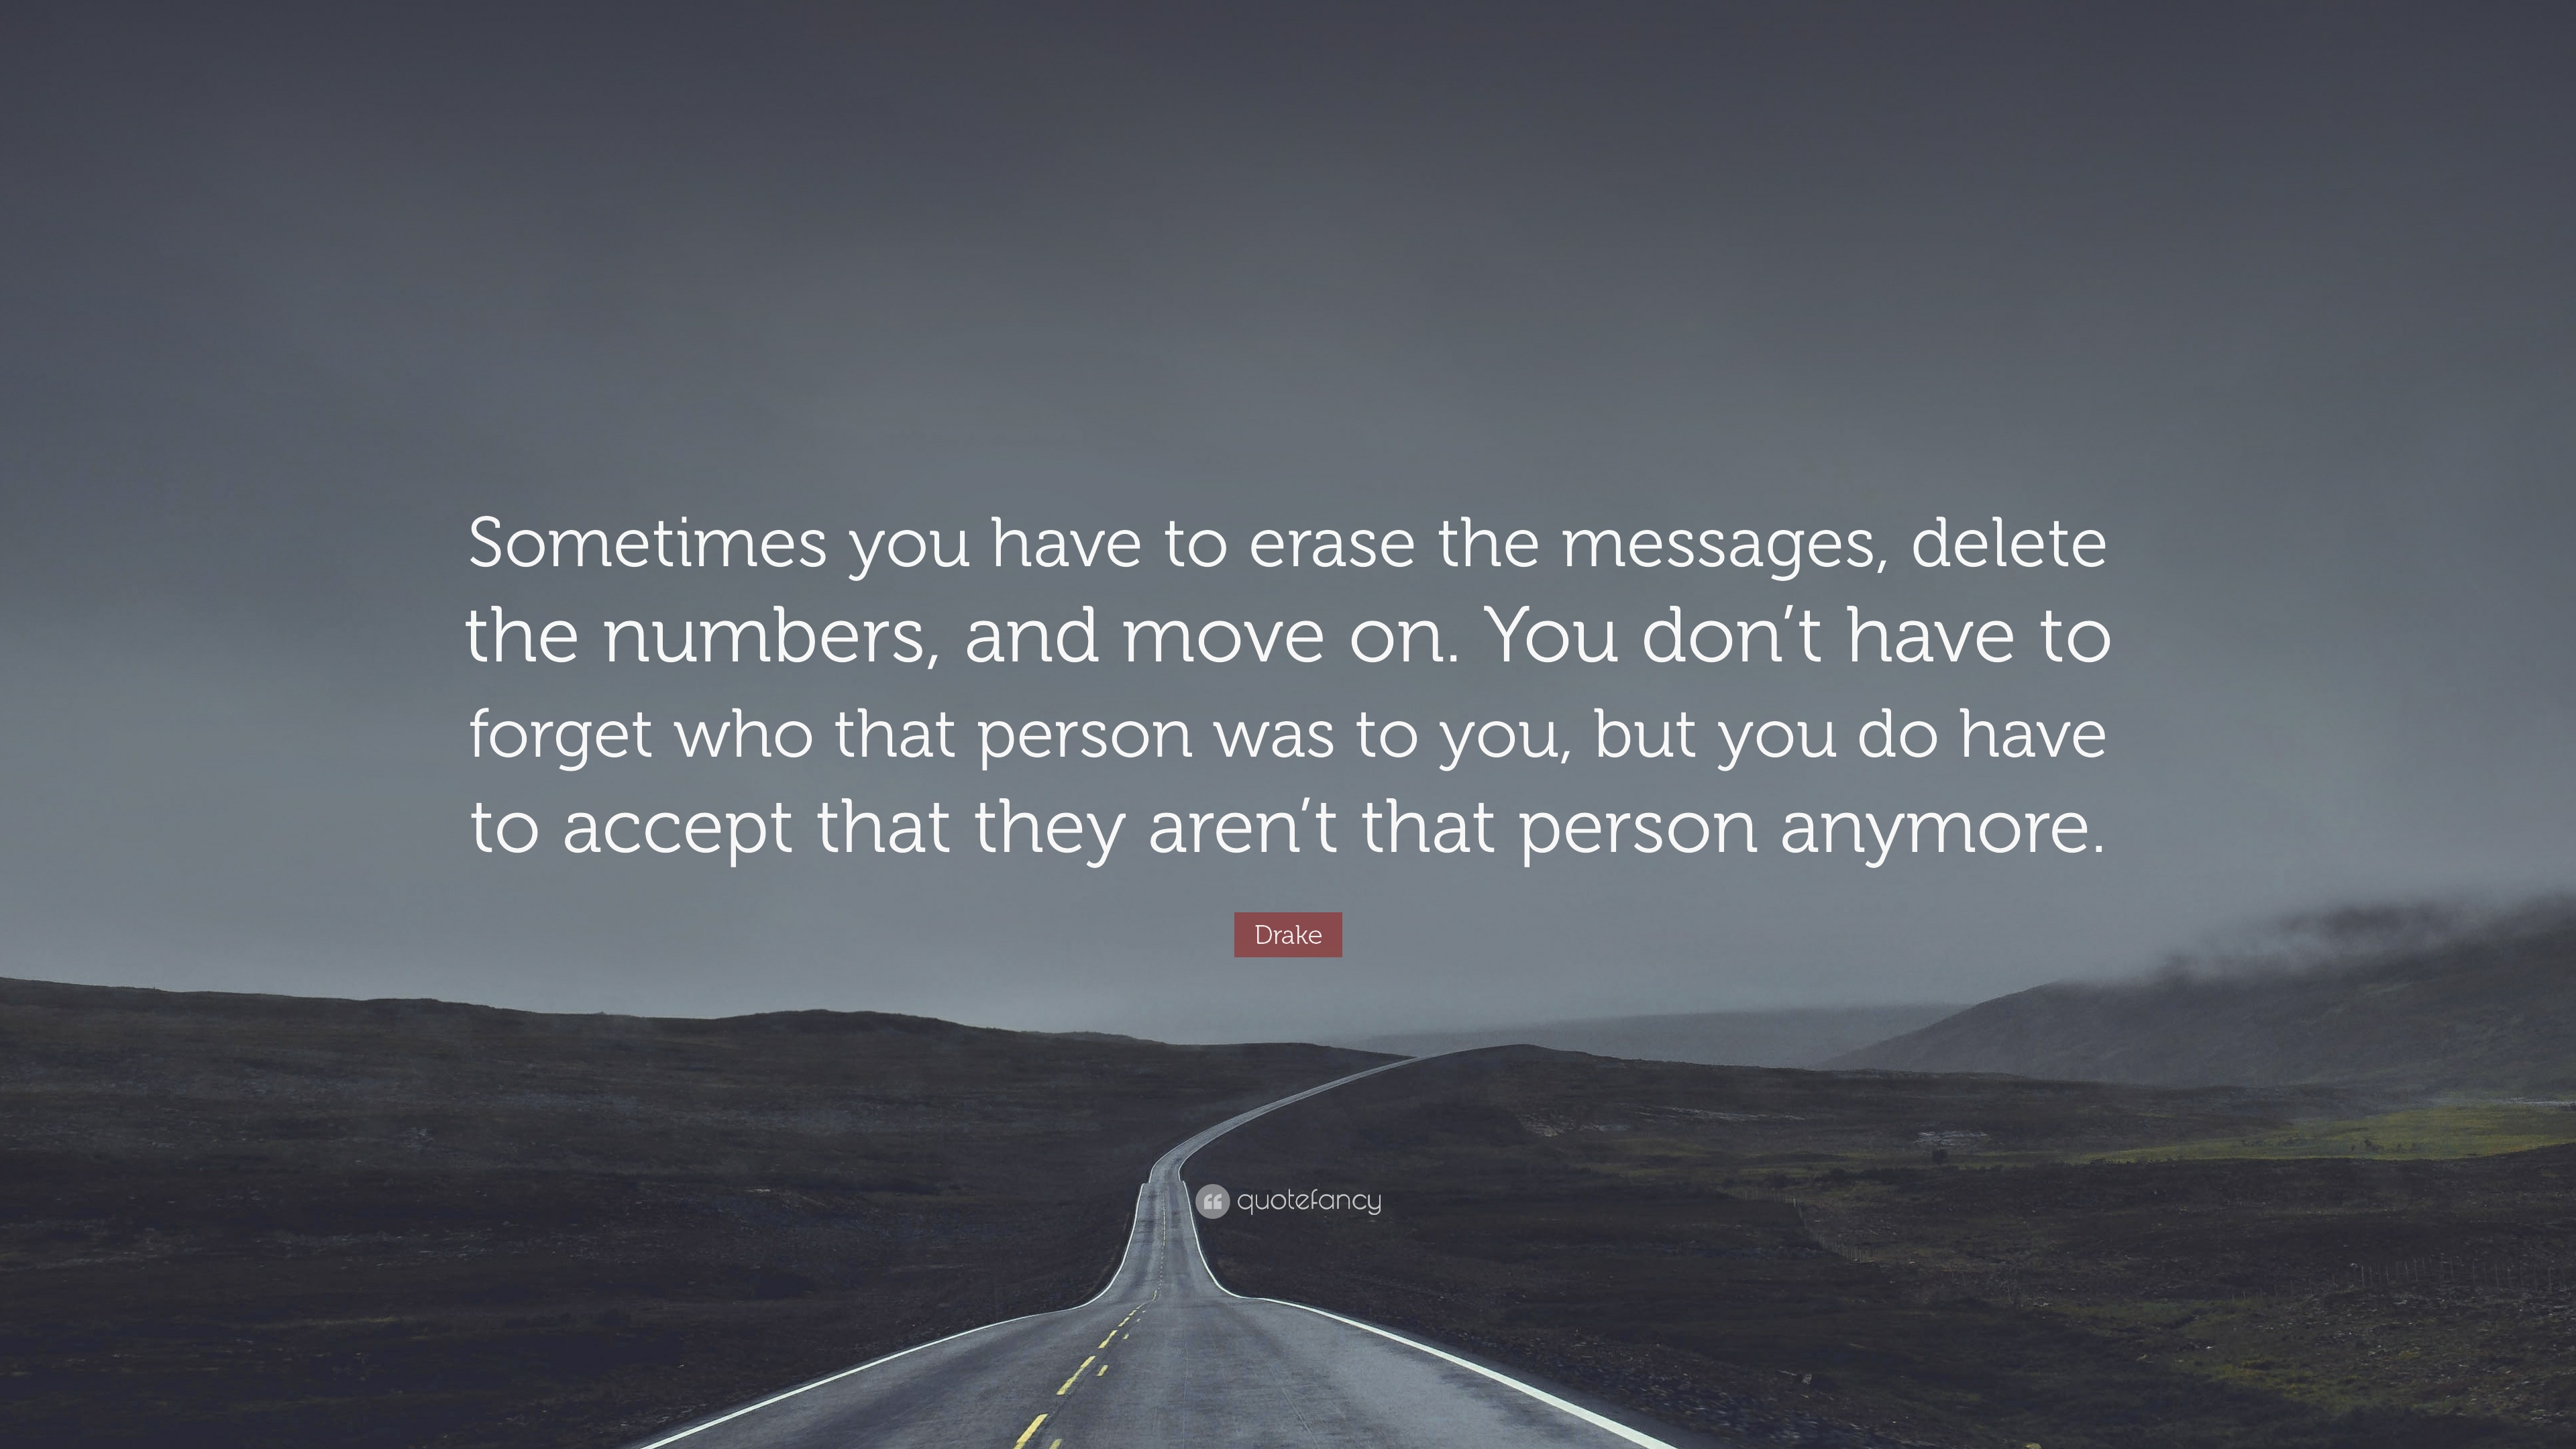 Sometimes You Have To Erase The Messages Delete The Like Water Quote 3840x2160 Download Hd Wallpaper Wallpapertip